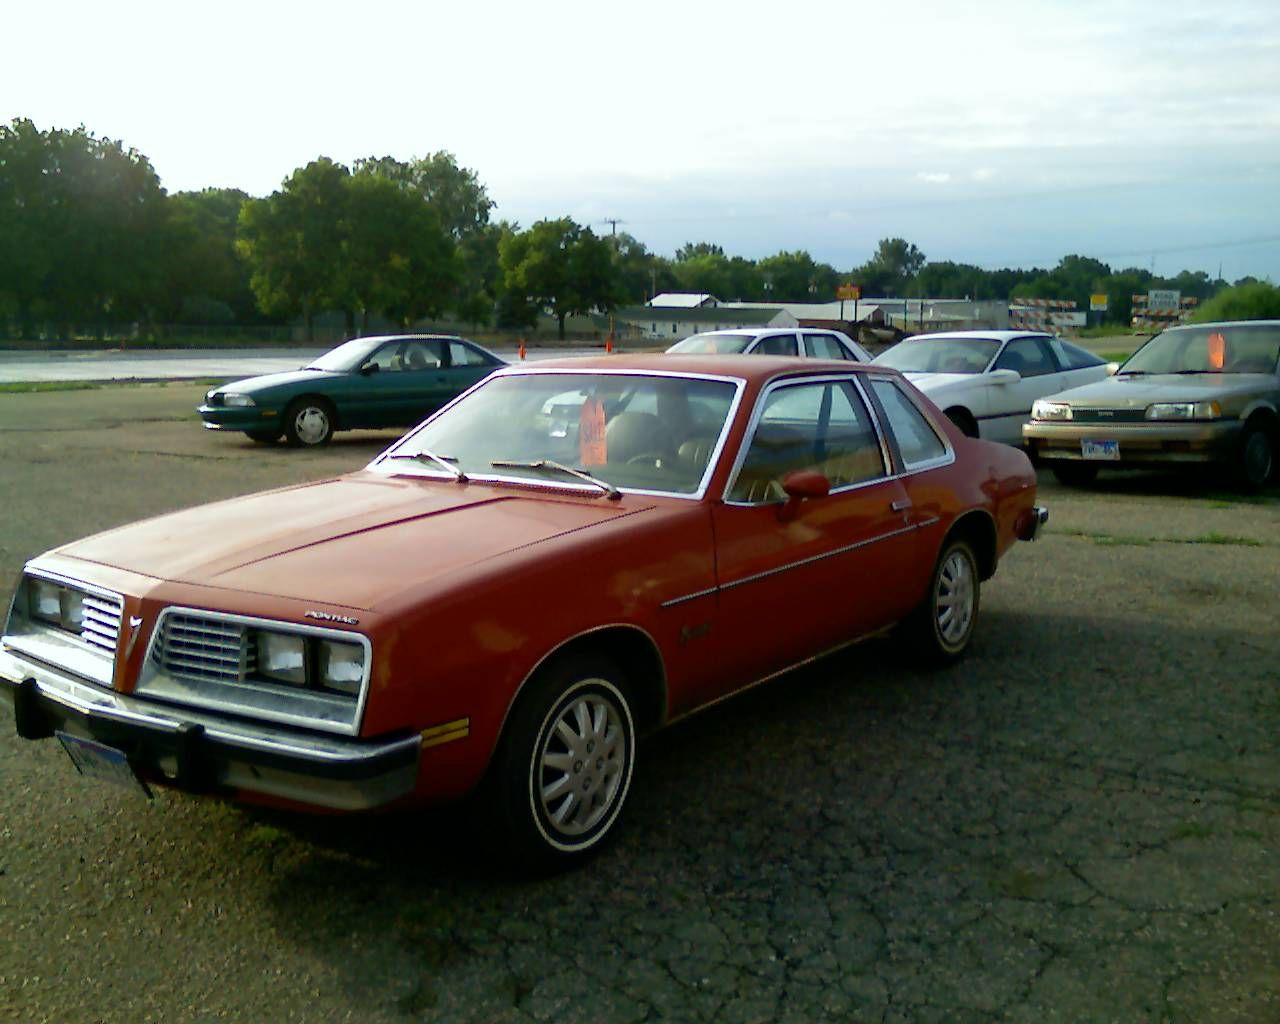 1980 Pontiac Sunbird Rx S First Owned Car We Need The